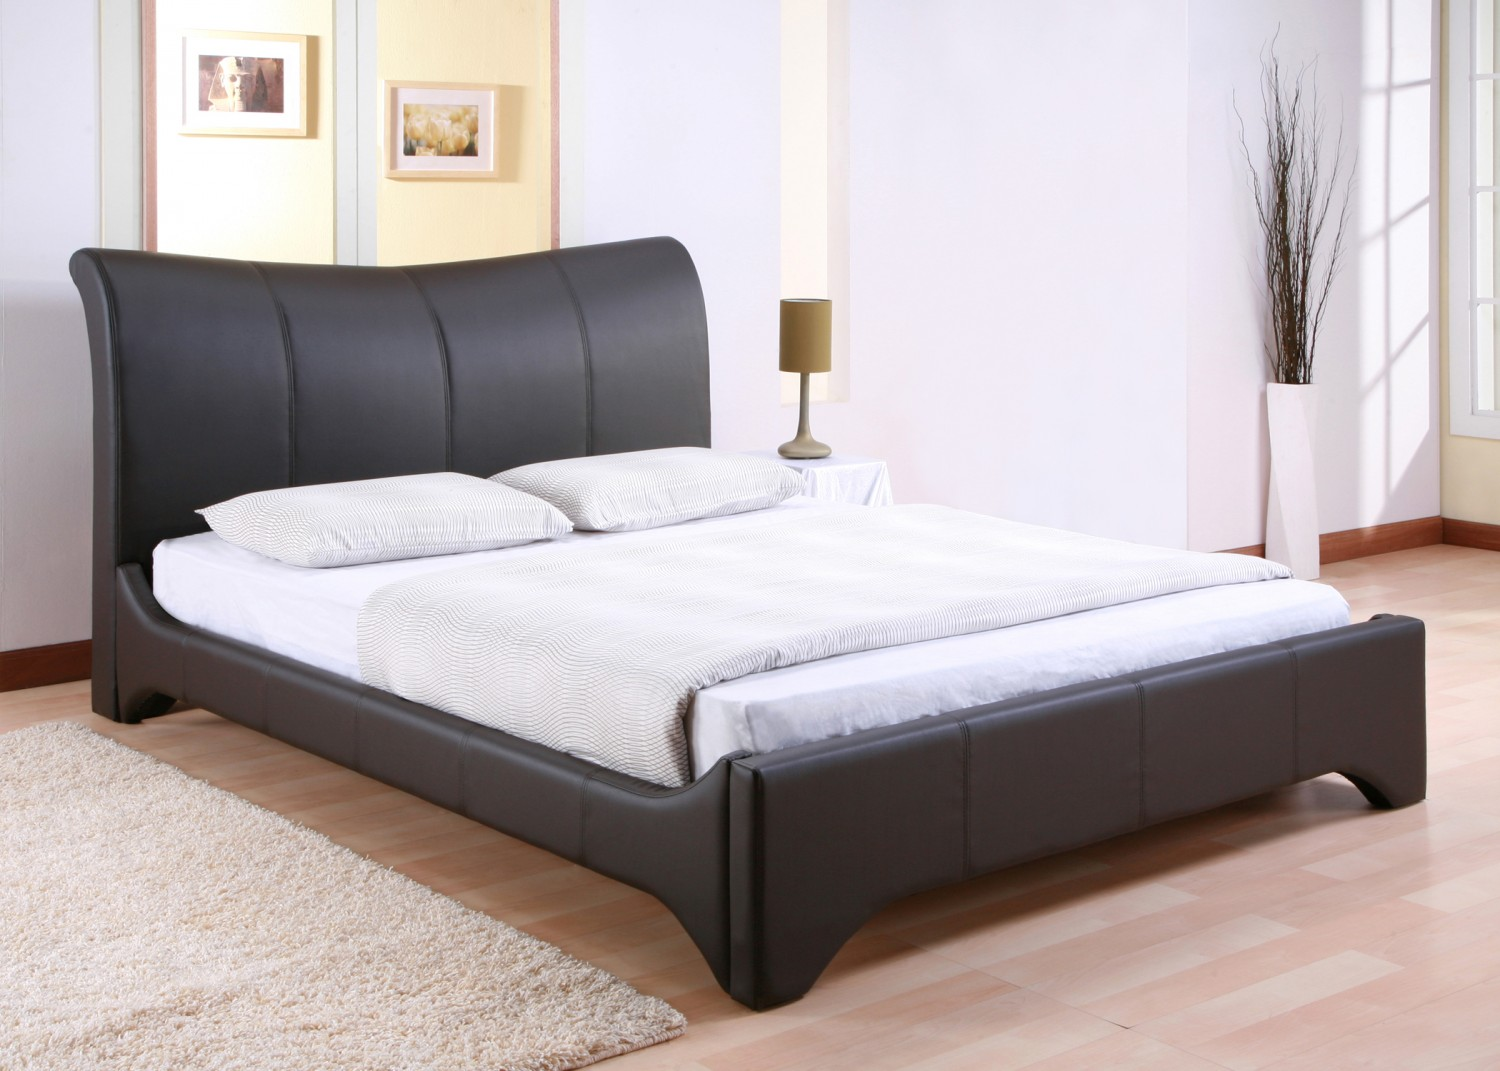 wonderful queen size platform bed with brown rugs